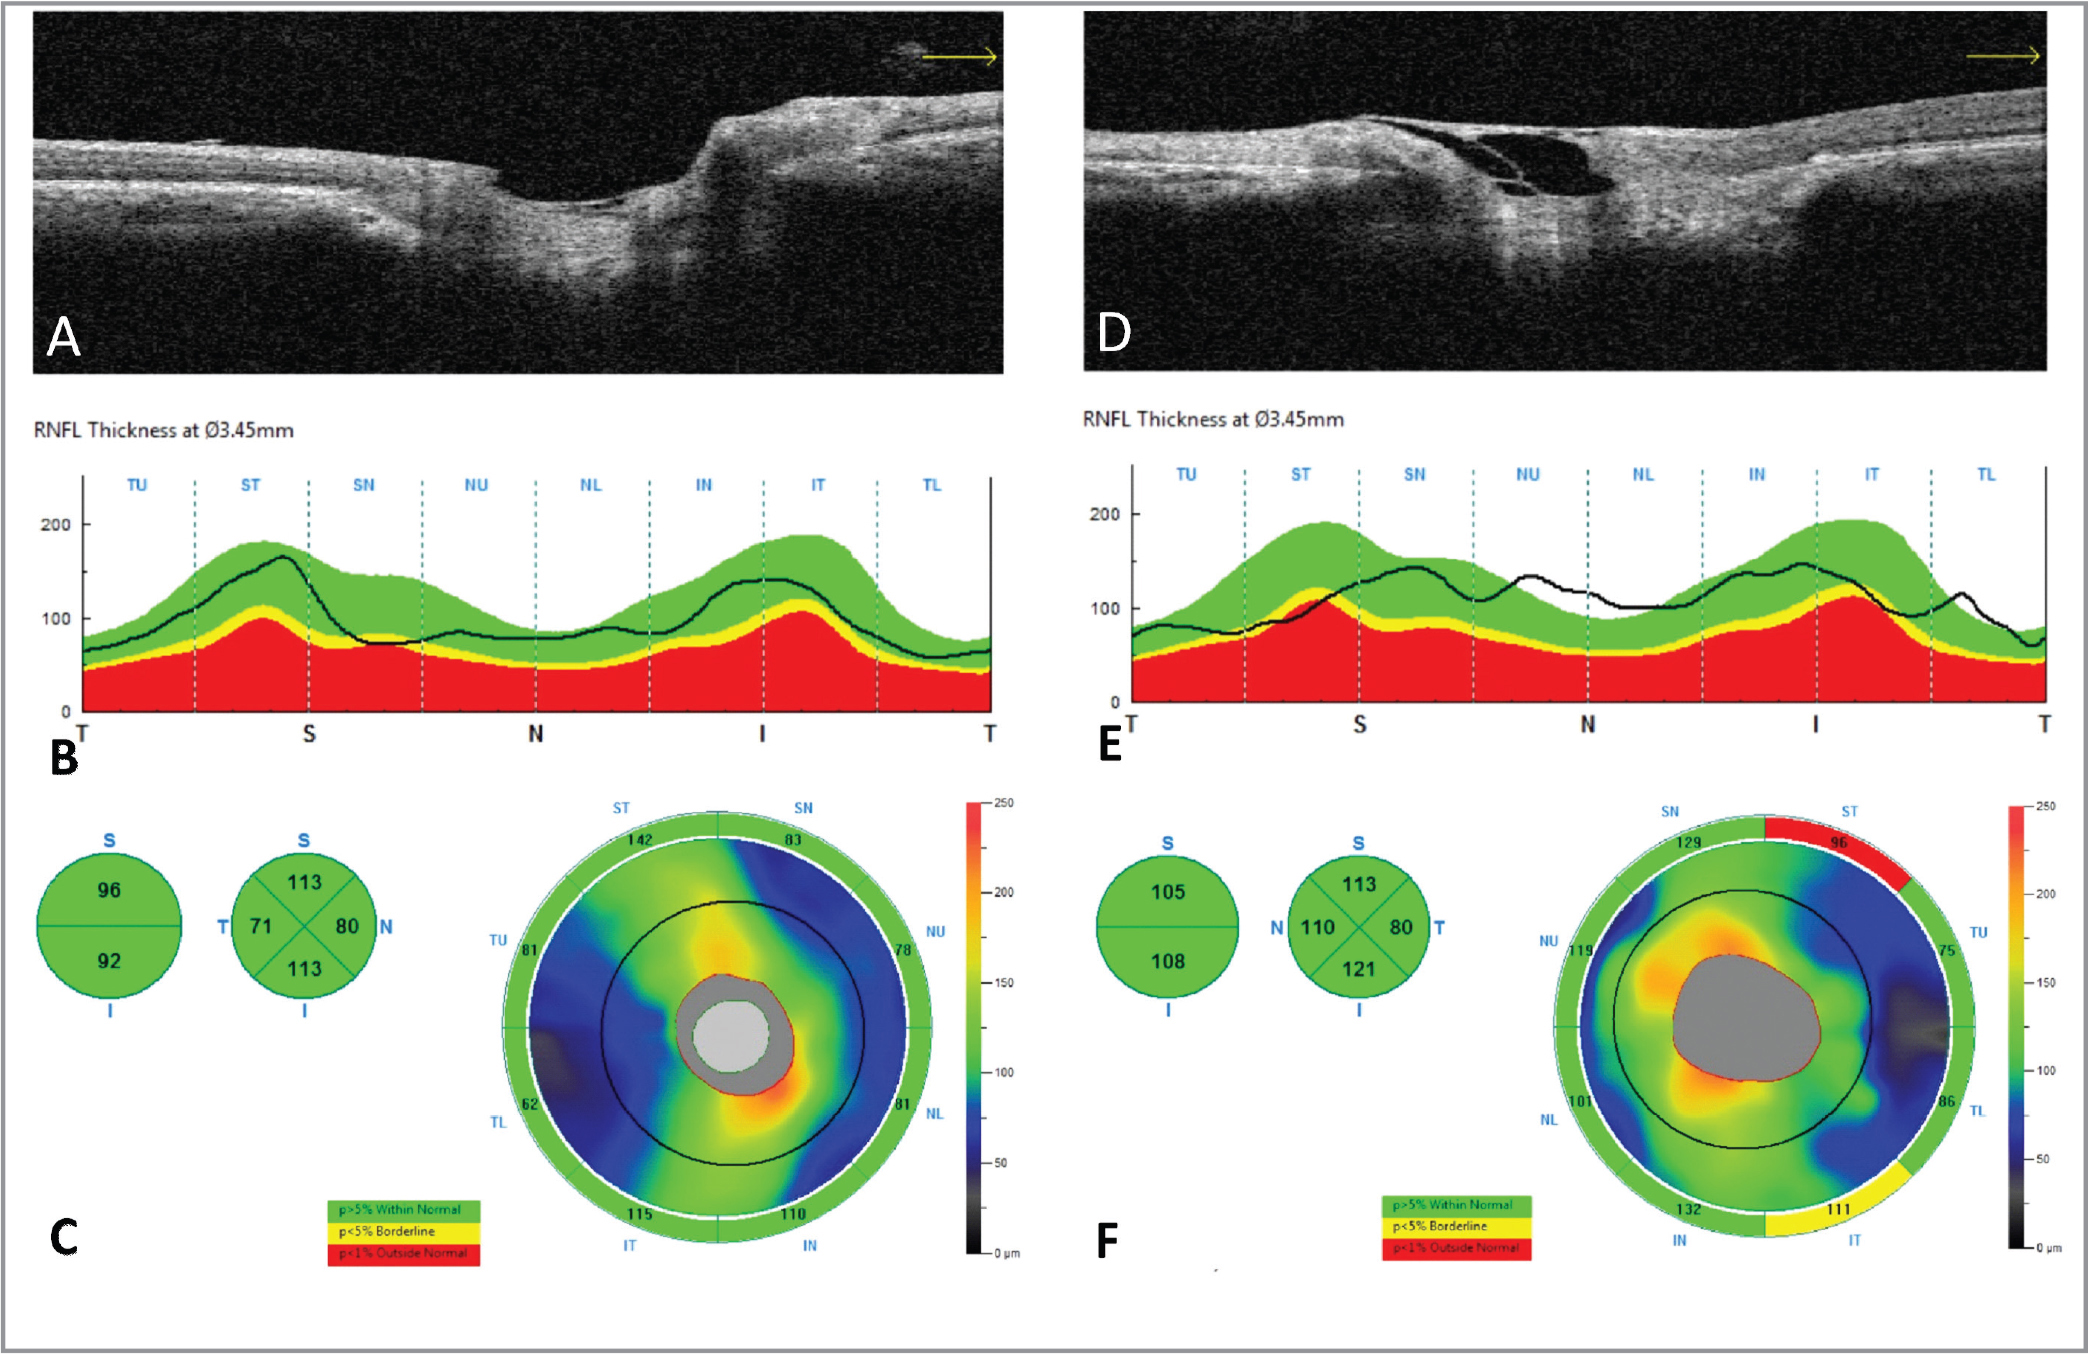 Disc optical coherence tomography (OCT). Horizontal cross-section of the optic nerve head image (A, D), temporal-superior-nasal-inferior-temporal curve of the peripapillary retinal nerve fiber layer (RNFL) thickness profile along the 3.45 mm diameter circle (B, E), RNFL thickness measurement summarized in two quadrants (superior and inferior) and four sectors (superior, nasal, inferior, and temporal), and RNFL thickness map (C, F) provided by the spectral-domain OCT. The left eye with situs inversus of the optic disc (D–F) showed thicker RNFL in the nasal quadrant and smaller cup-to-disc ratio when compared to the right eye (A–C) without situs inversus of the optic disc.